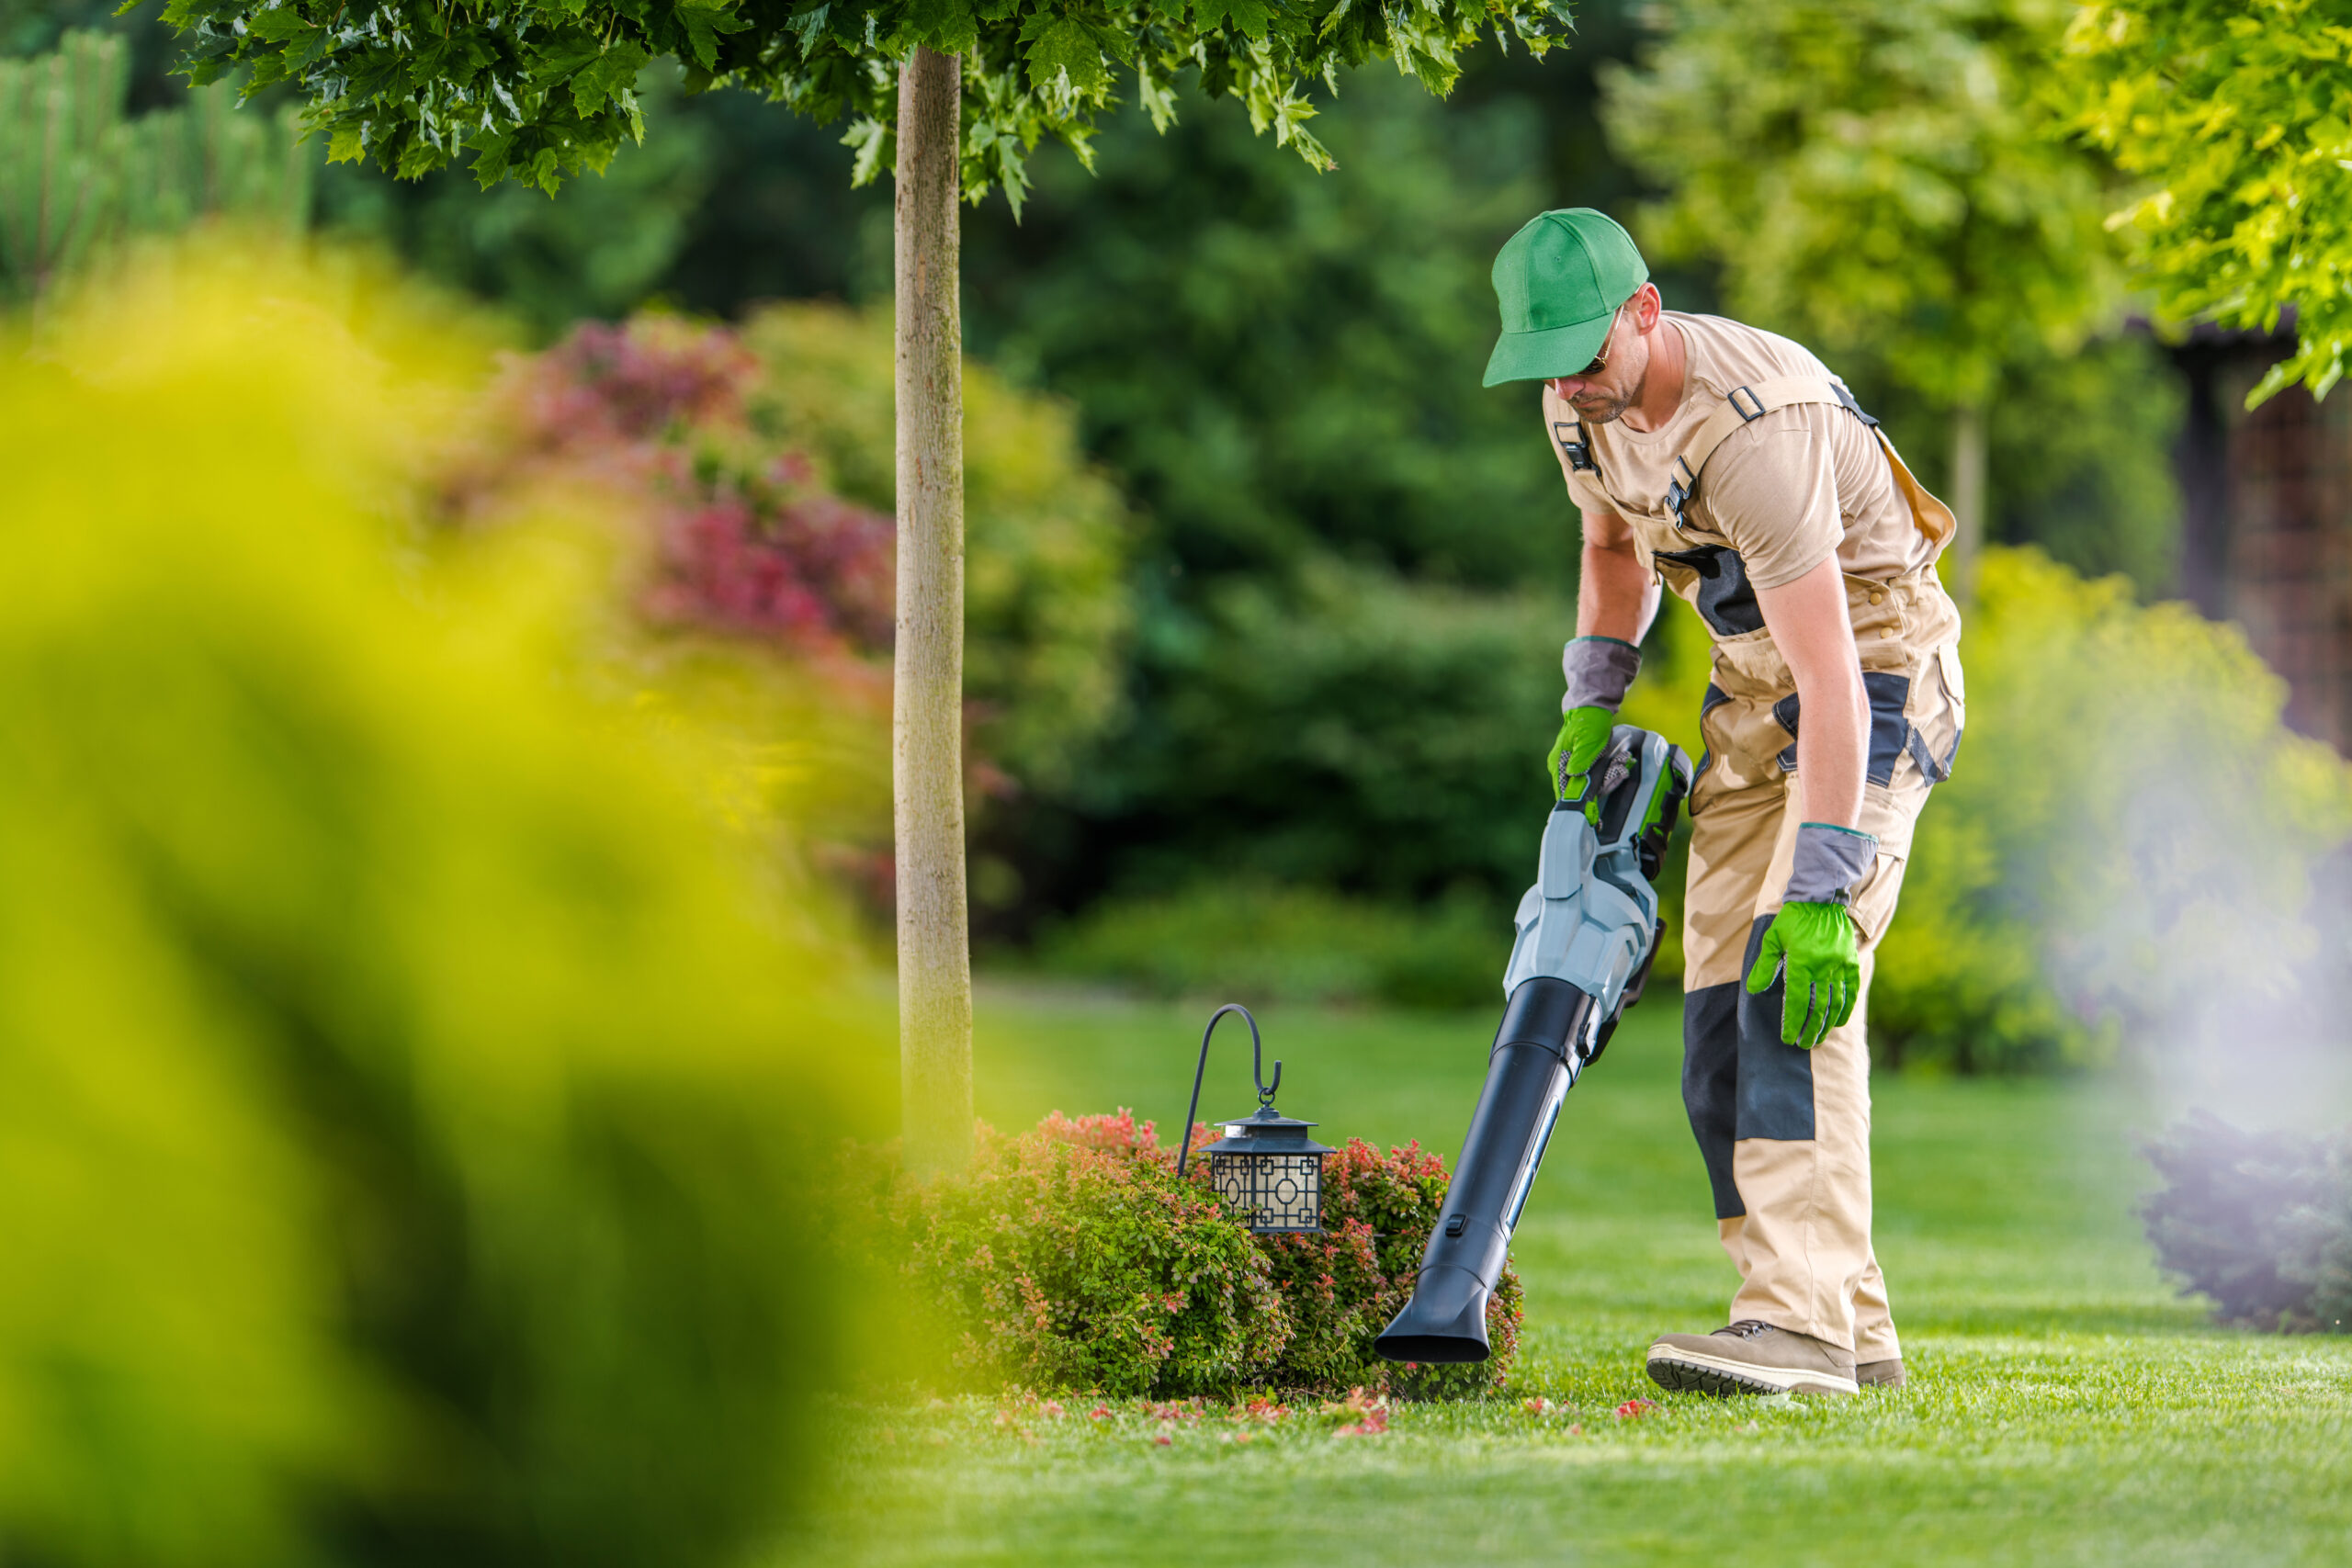 Caucasian Gardener in His 40s Cleaning Backyard Garden Lawn Using Modern Electric Cordless Leaf Blower. Landscaping and Gardening Theme.